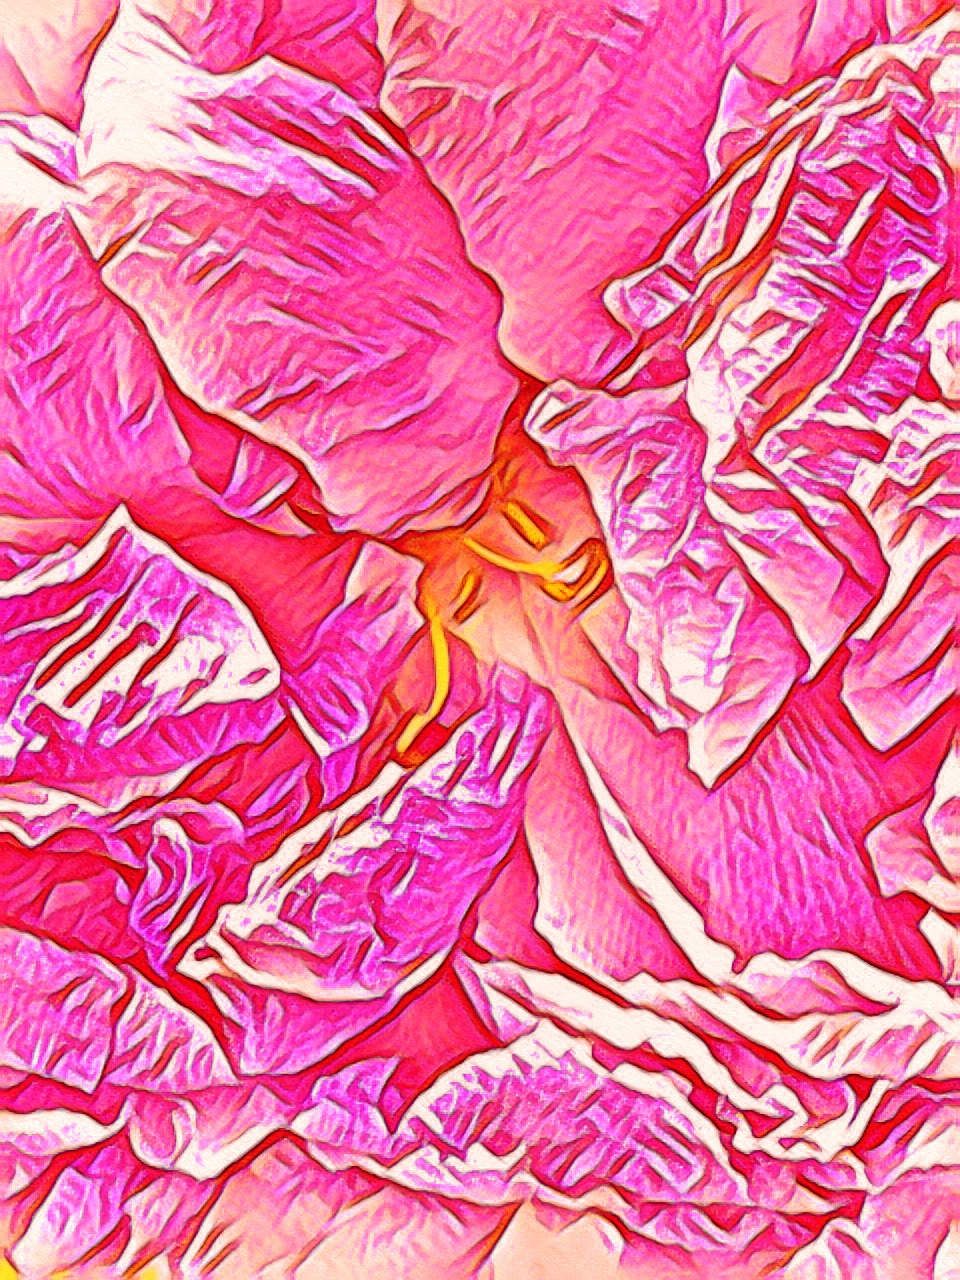 July 17, 2019 - A puffy, past-prime peony.